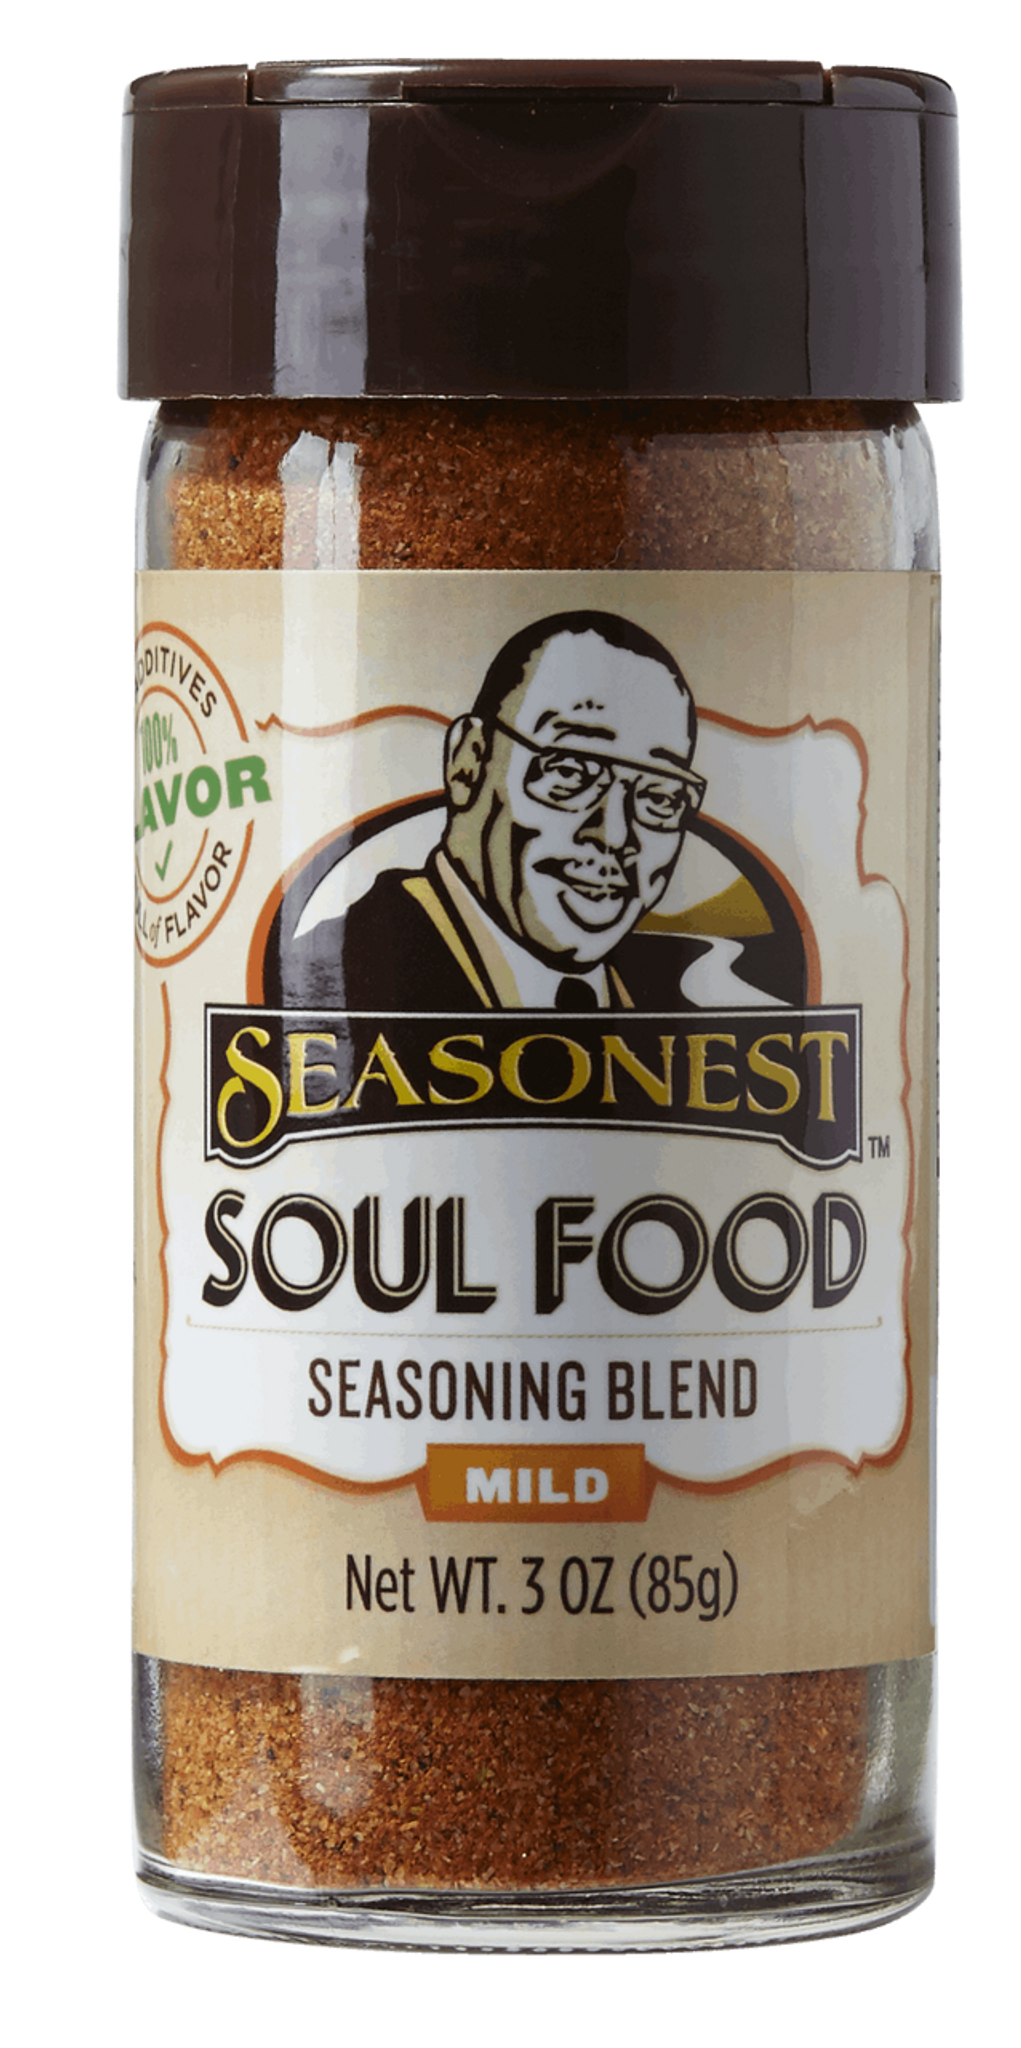 Seasonest Soul Food Mild Seasoning Blend